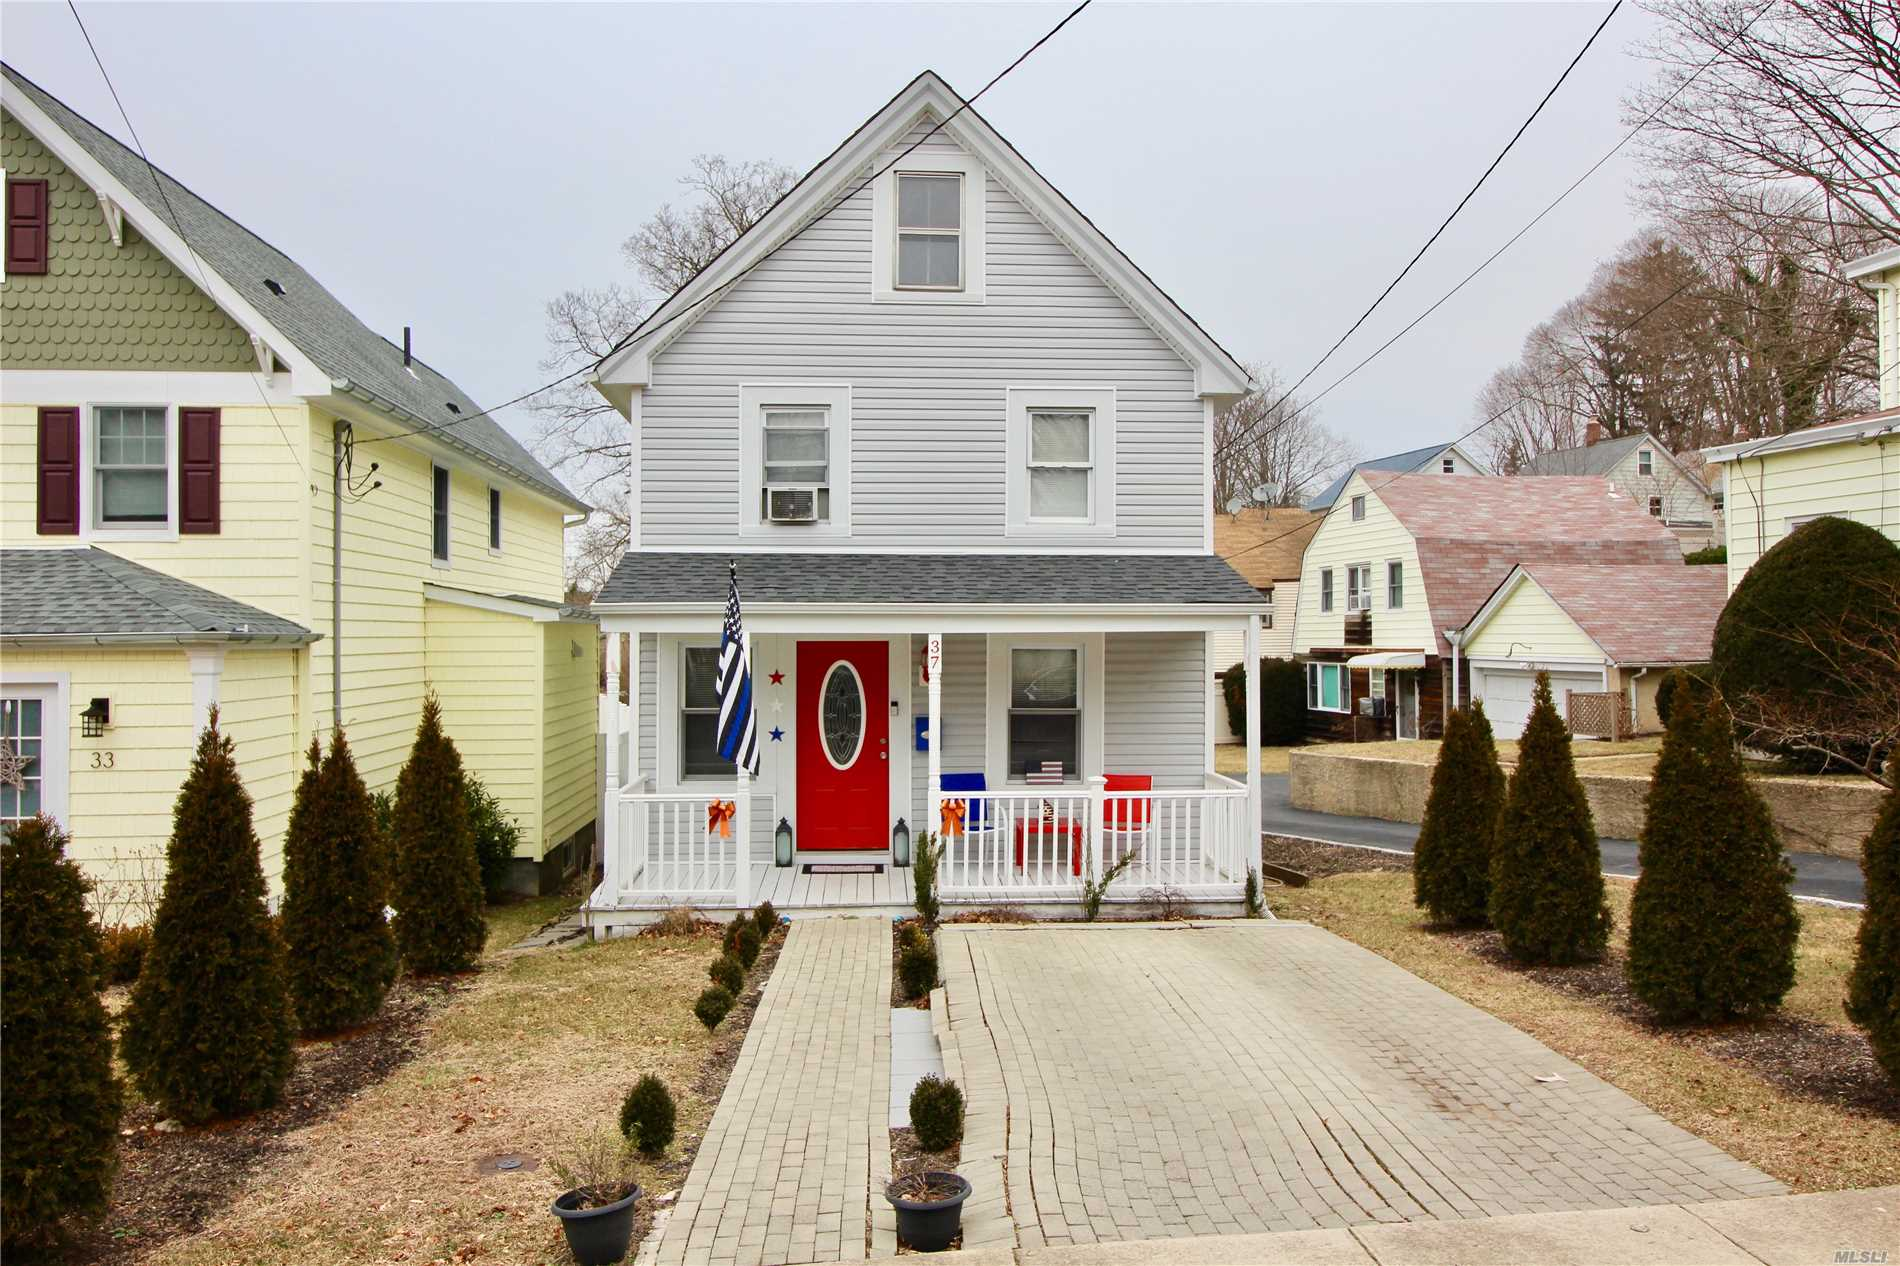 All Updated 3 Bedroom Colonial, Full Finished Basement With Outside Entrance In The Heart Of Oyster Bay. New Roof New Siding, New Heating And Plumbing Throughout House. Pex Plumbing With Baseboard Heat On All Floors. Beautiful Kitchen And Bathrooms Both Less Than 2 Years Old. Walking Distance To Beach, Lirr, Home To Usa's Largest Oyster Festival In October. Low Taxes.